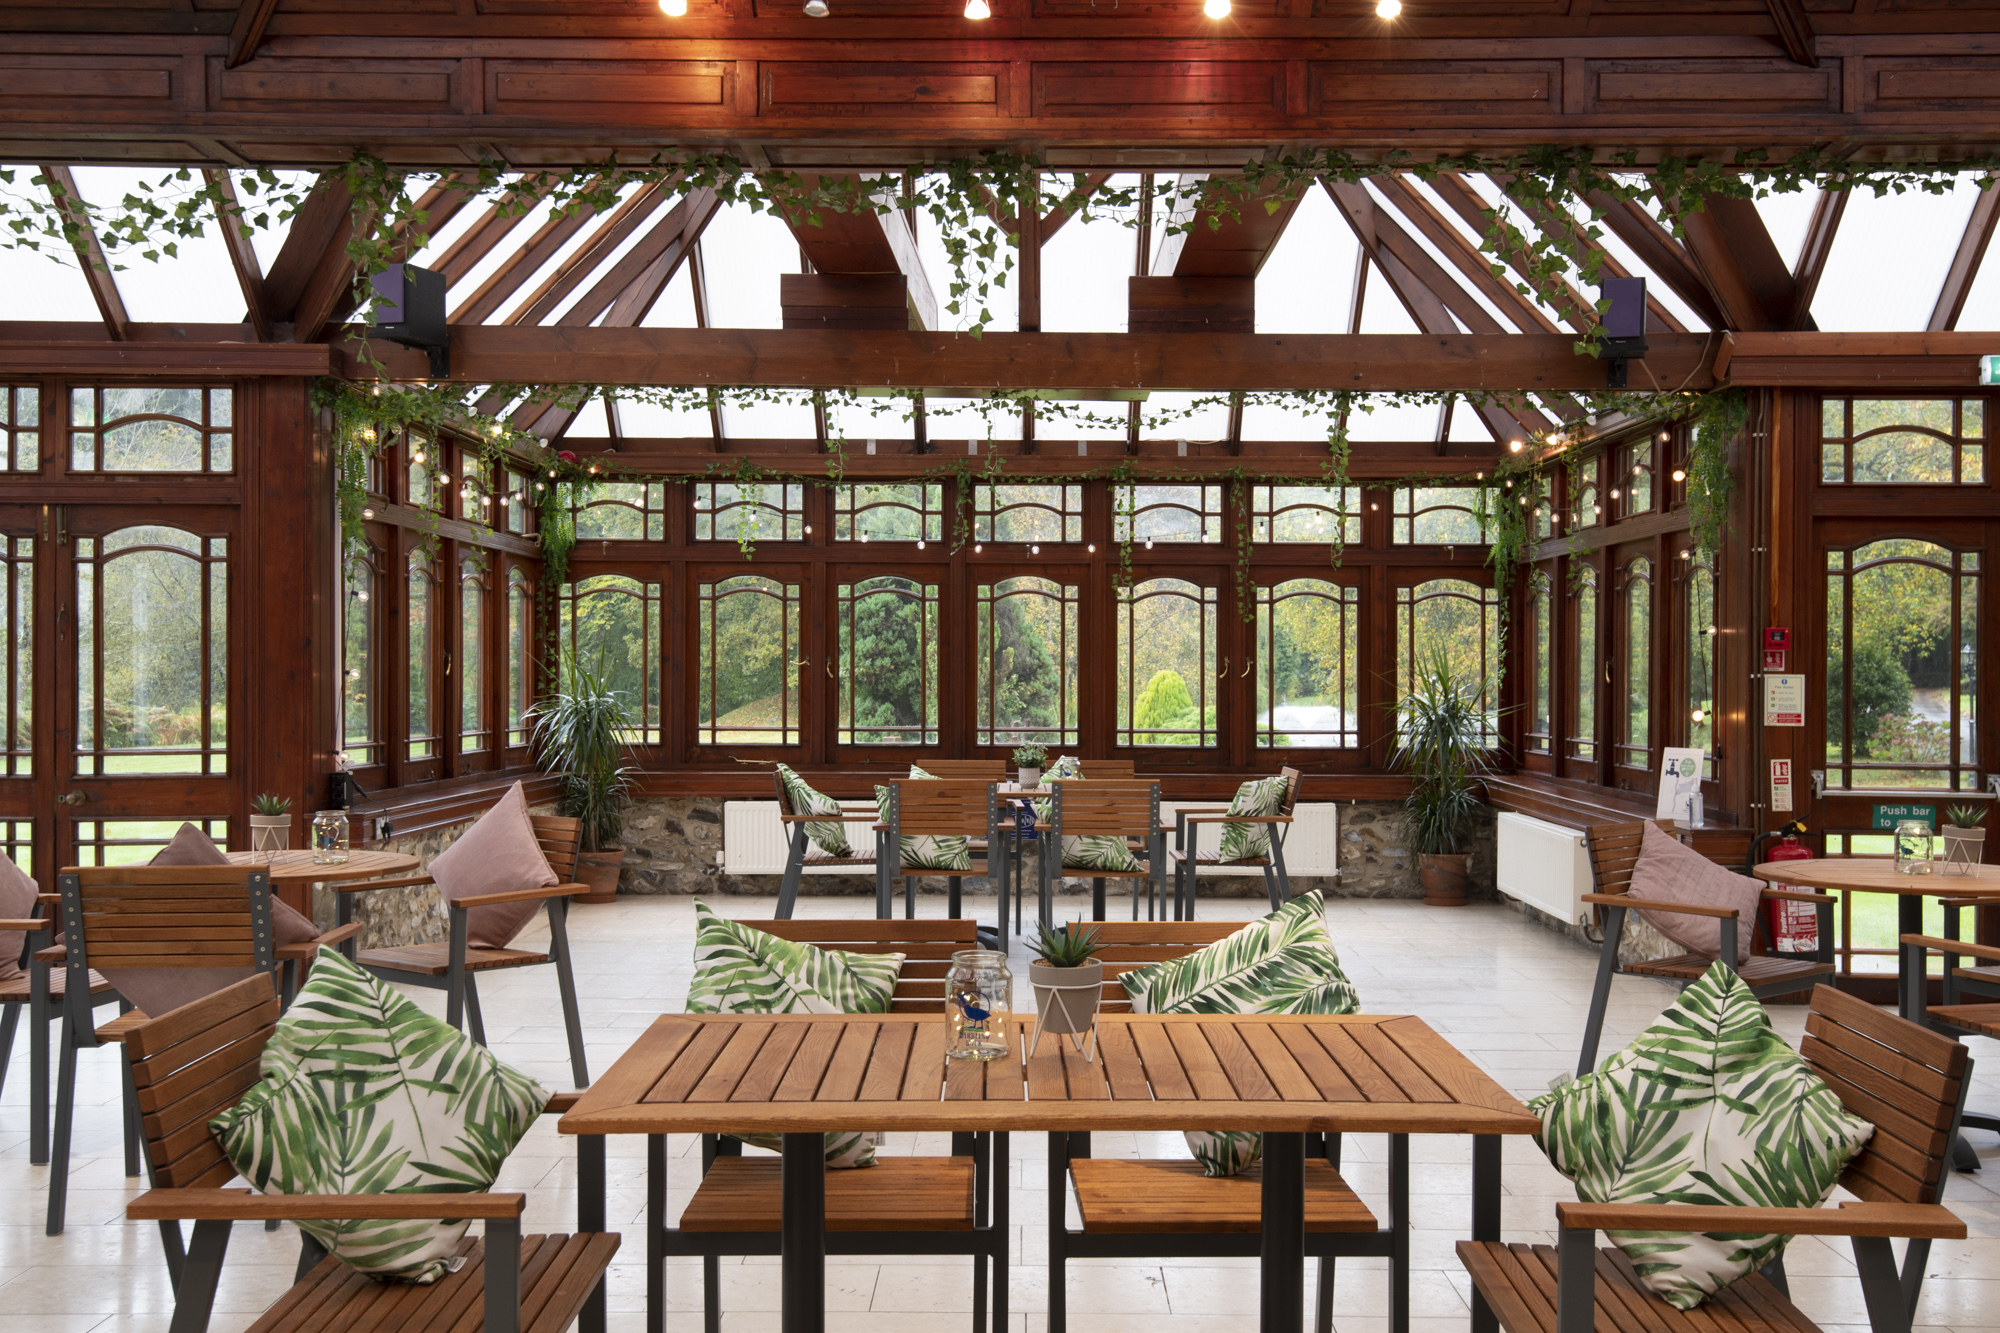 The beautiful garden room overlooking the front lake